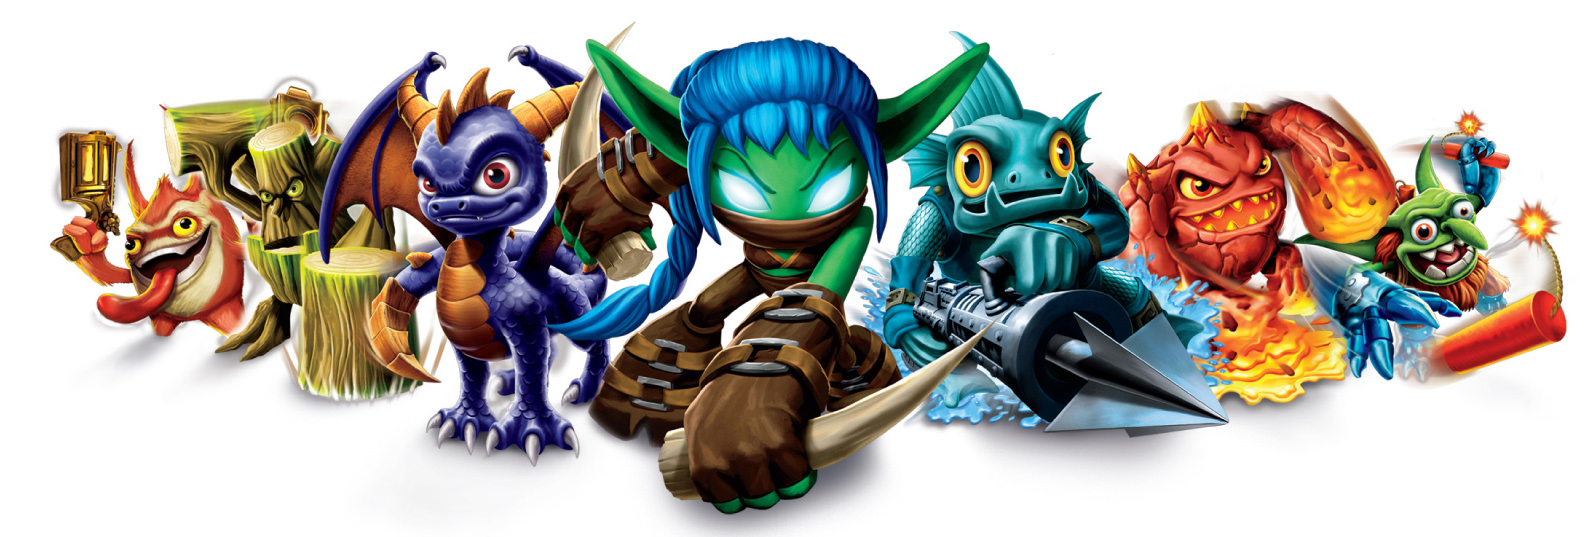 Skylanders All Spyro Figures Cheaper Than Retail Price Buy Clothing Accessories And Lifestyle Products For Women Men